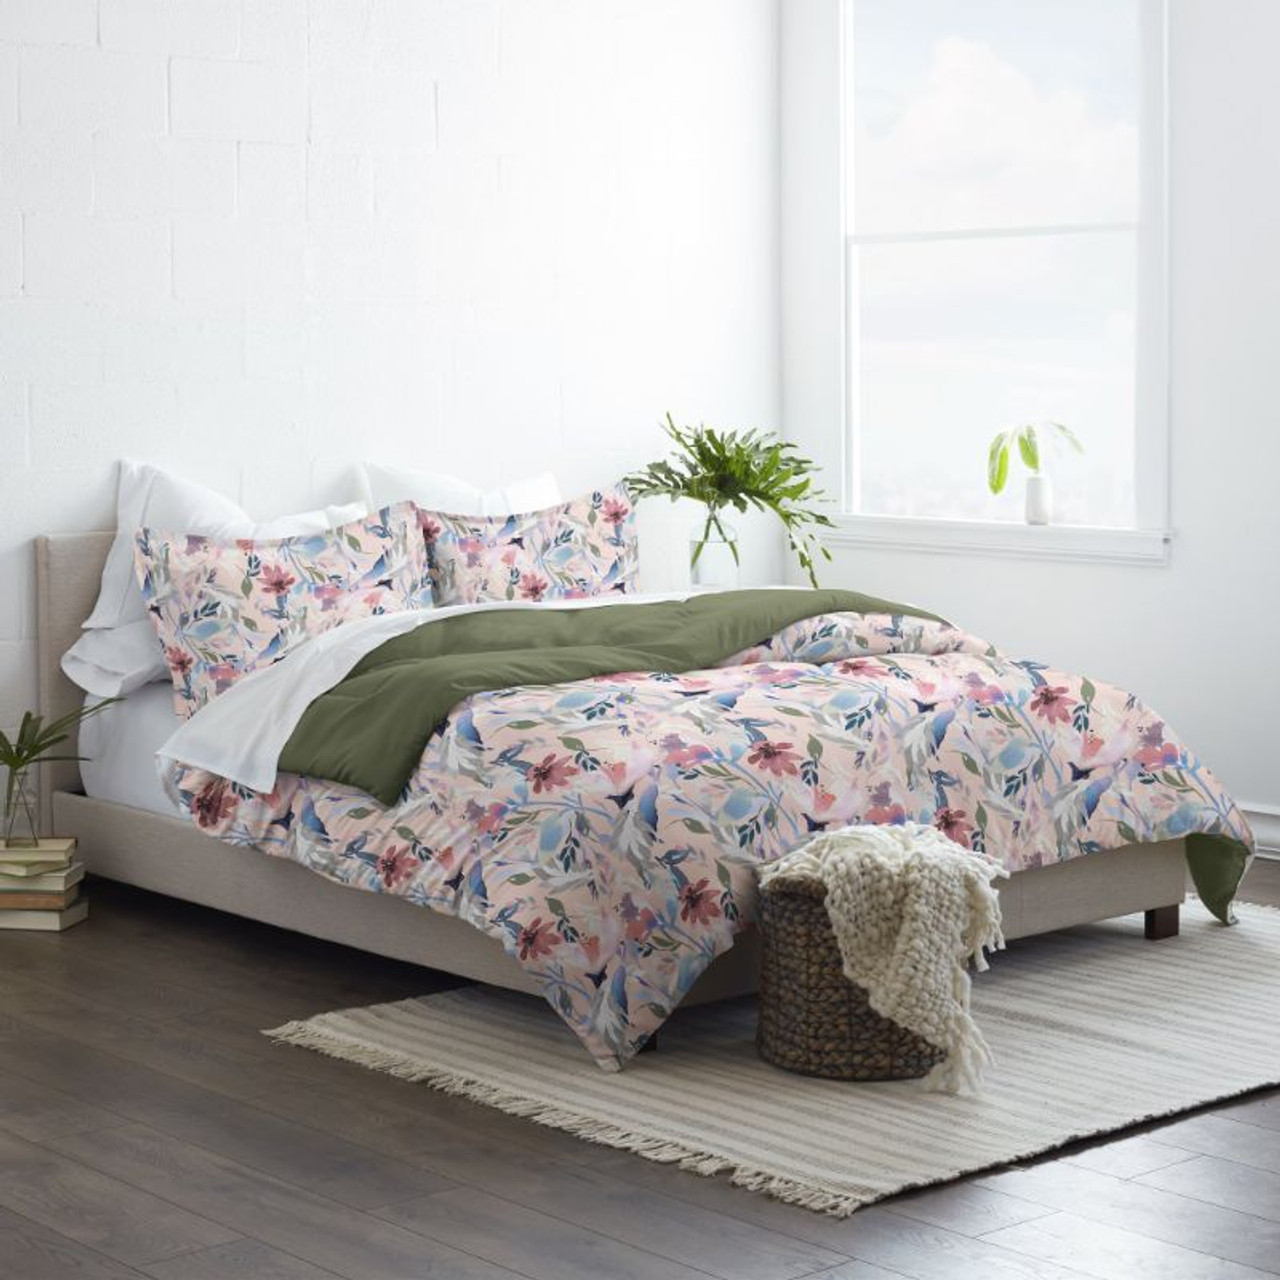 Made Supply Co. 3 Piece Reversible Comforter and Pillow Shams Bedding Set for Twin/Full/Queen